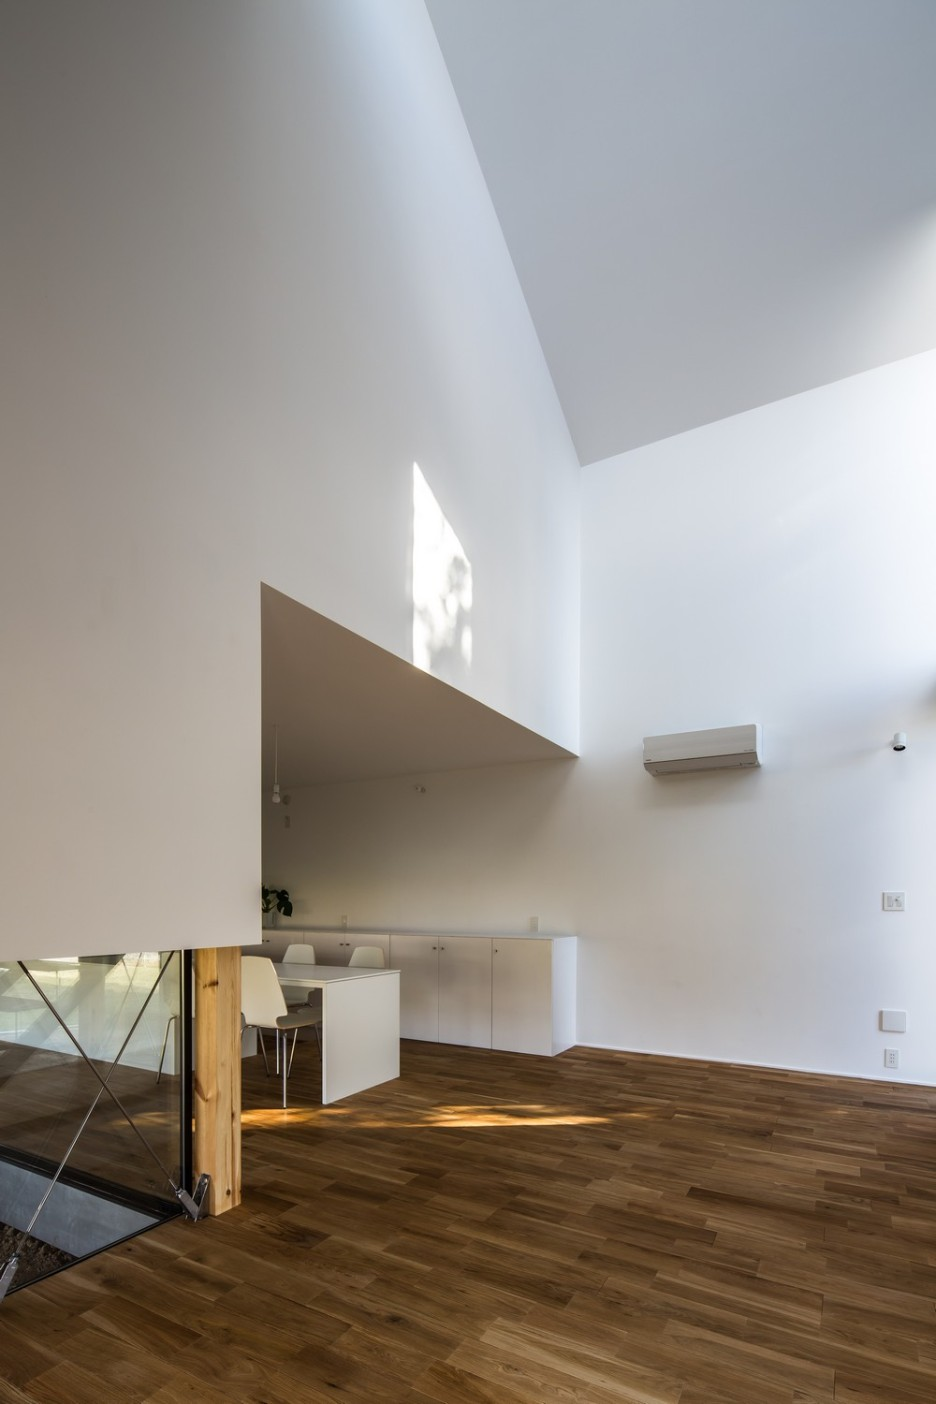 Modern Japanese Architecture Home Gives Inspiring Design Idea: Marvelous Kawate Residence Home Design Interior In Kitchen And Dining Space Used Minimalist White Furniture Design Ideas